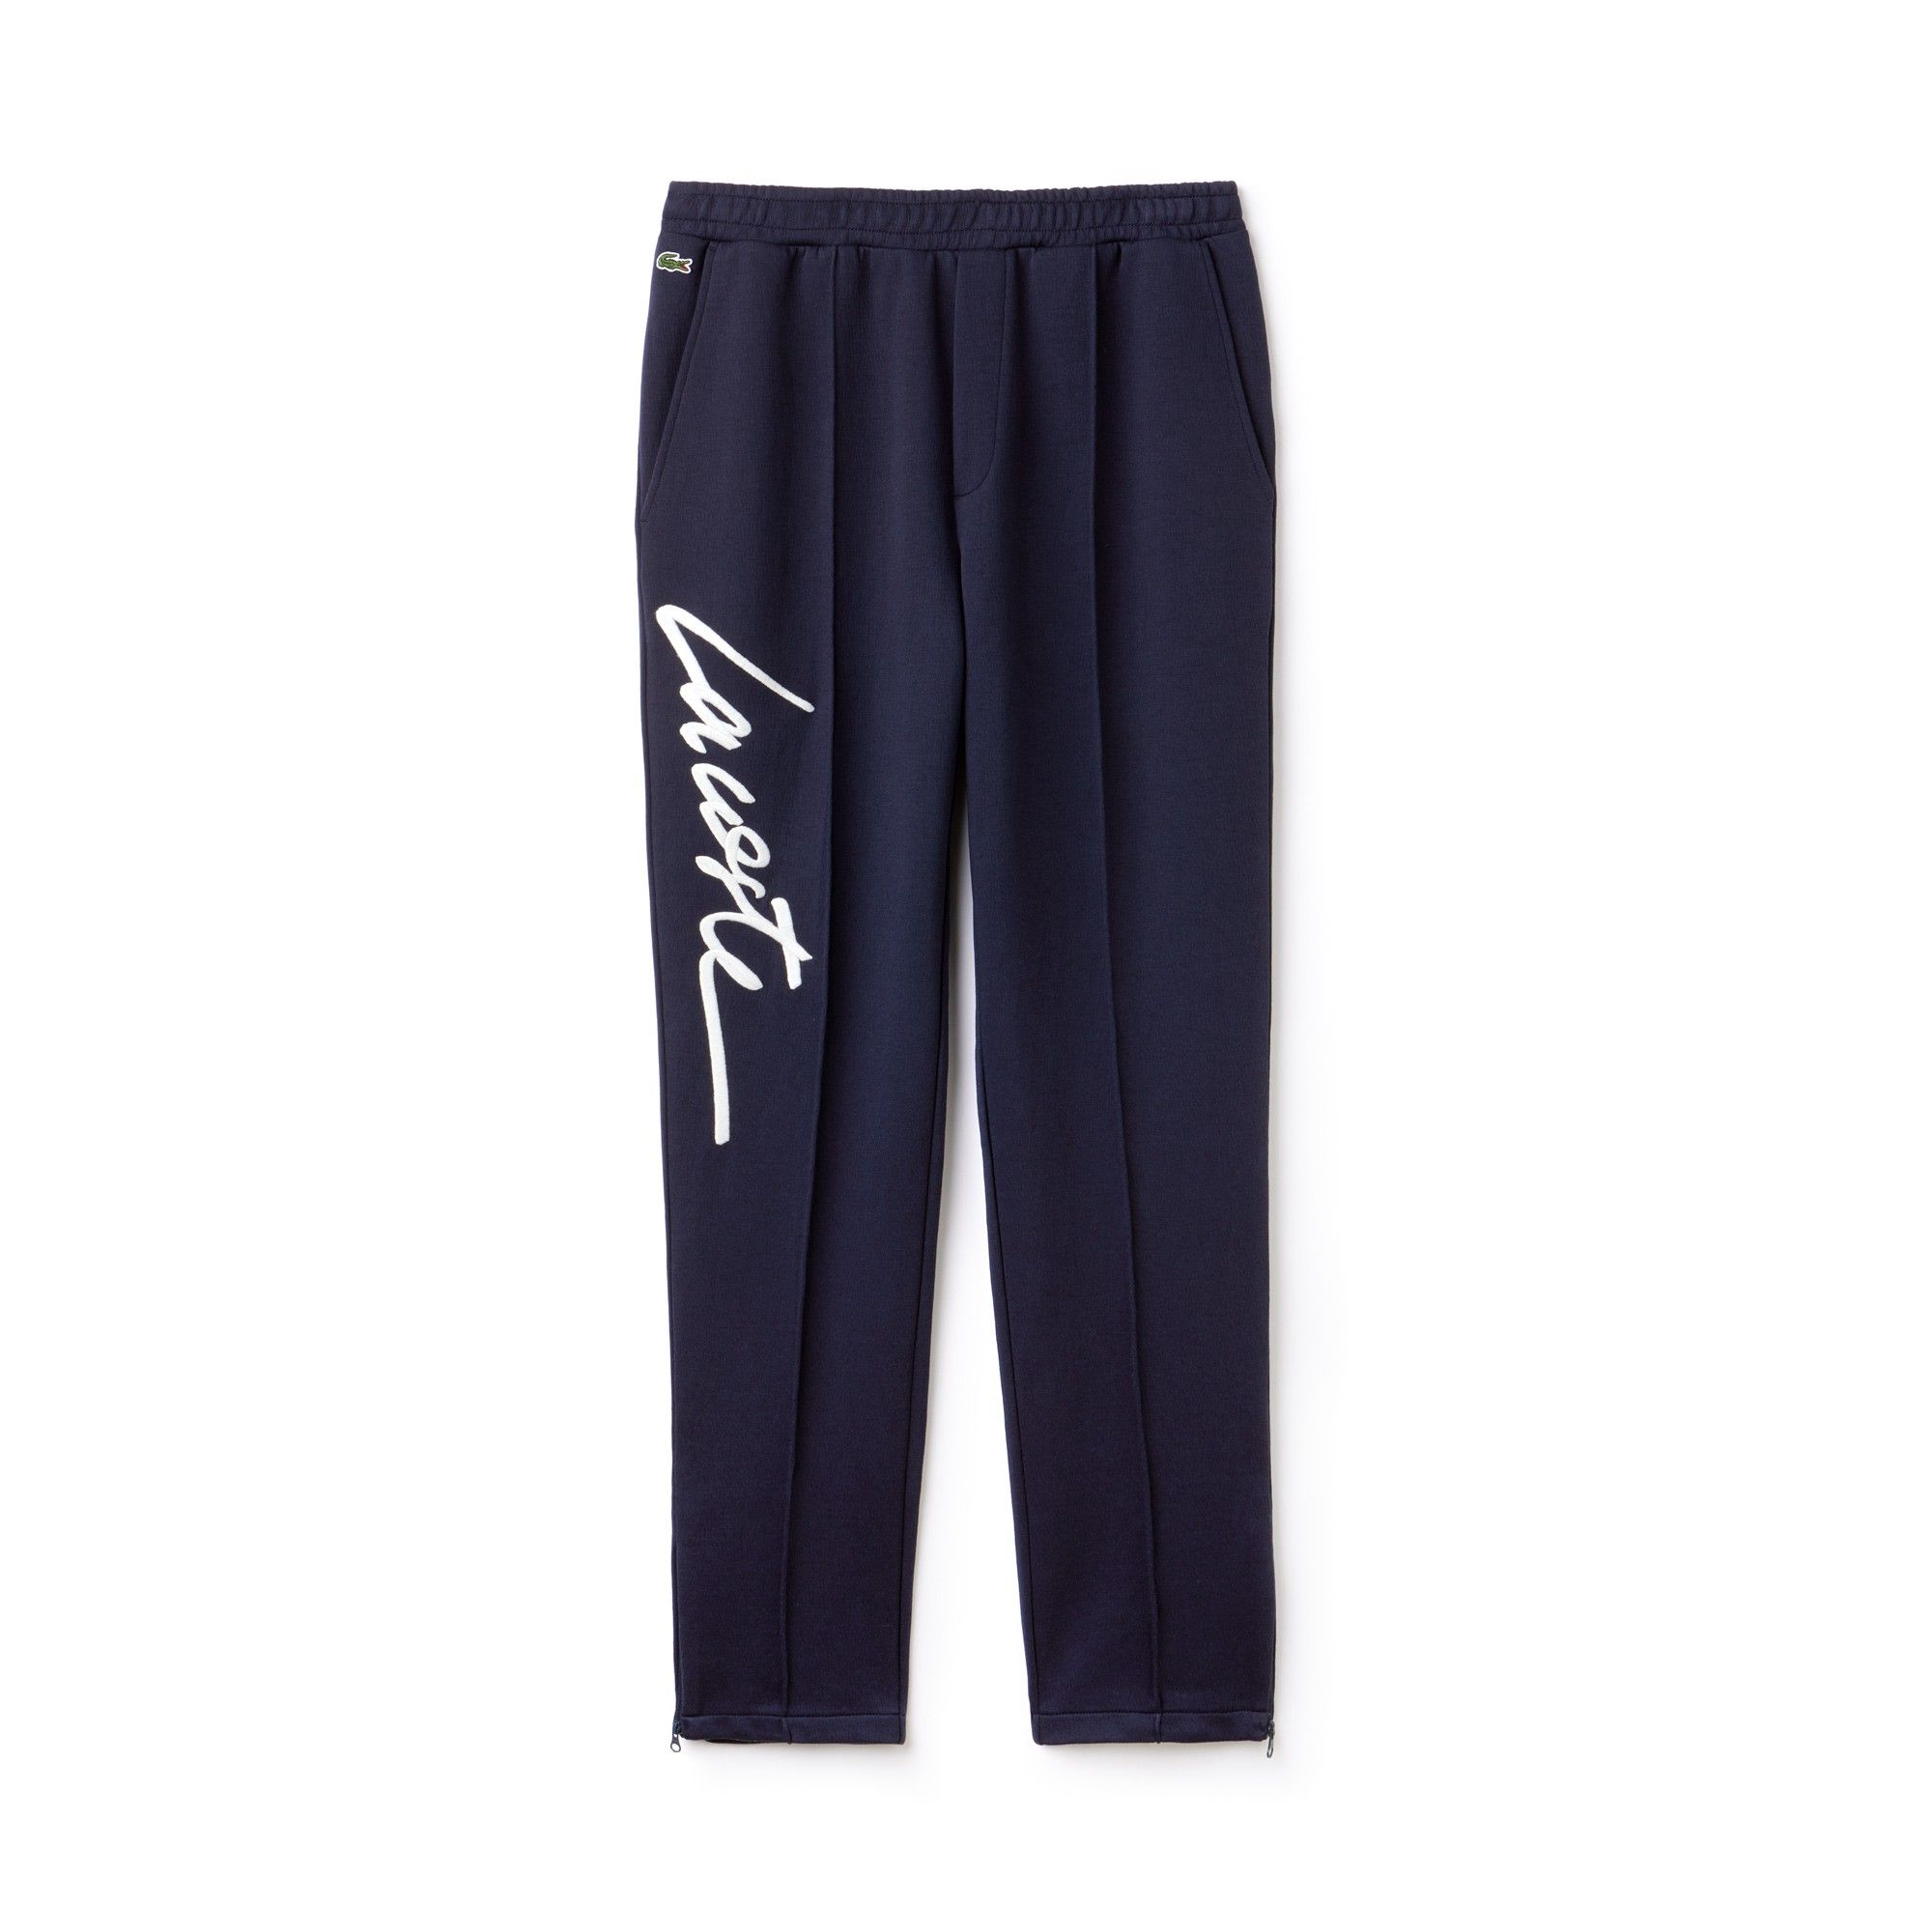 LACOSTE Women s Contrast Band Interlock Jogging Pants - METHYLENE FLOUR.   lacoste  cloth     Lacoste   Pinterest   Lacoste 2273088fd14